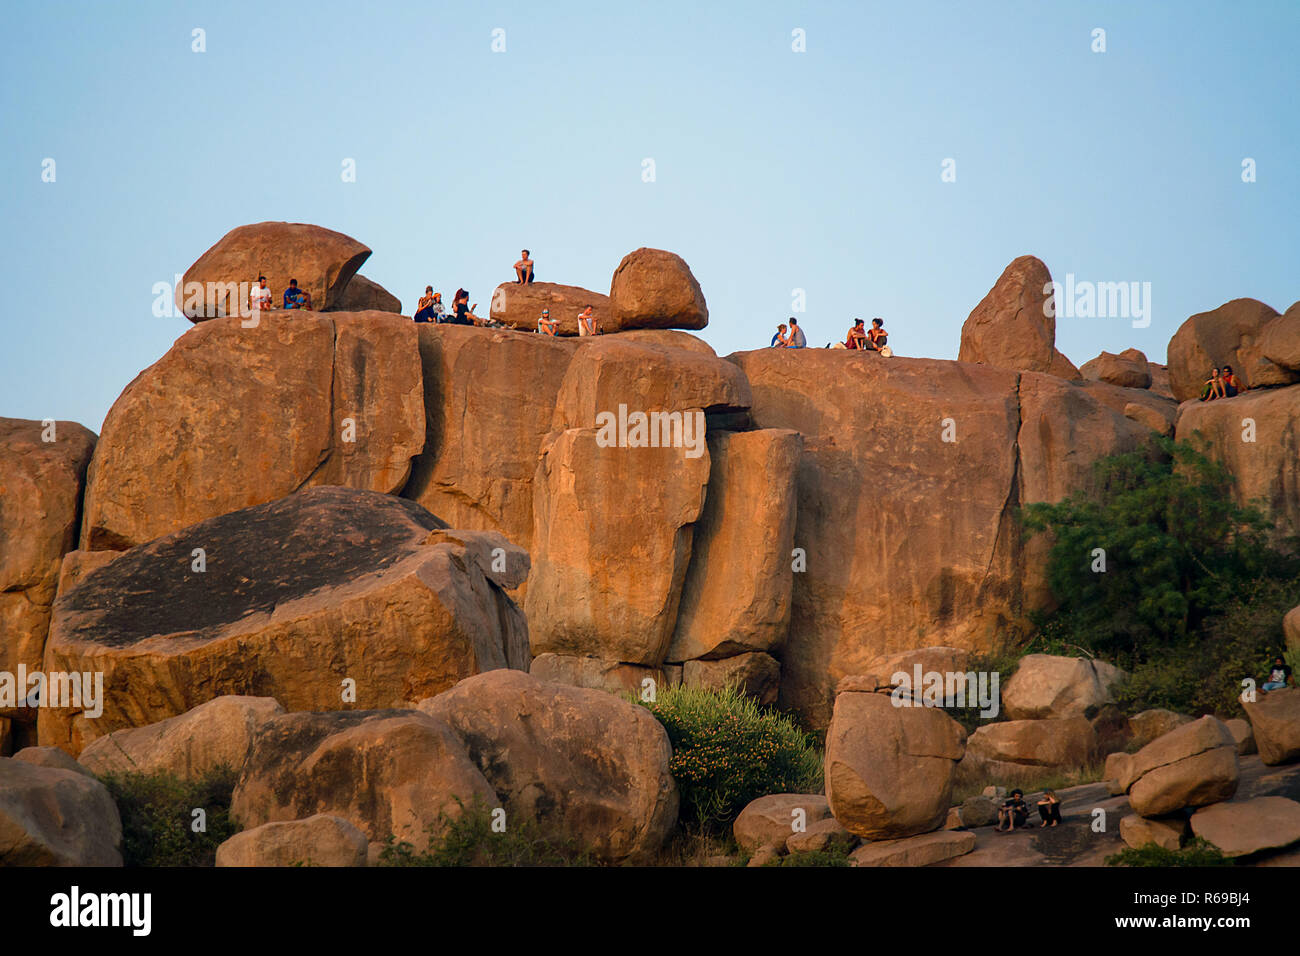 Western tourists and back packers socialise and enjoy a sunset from on top of a large boulder and red rock formation in Hampi, India. - Stock Image